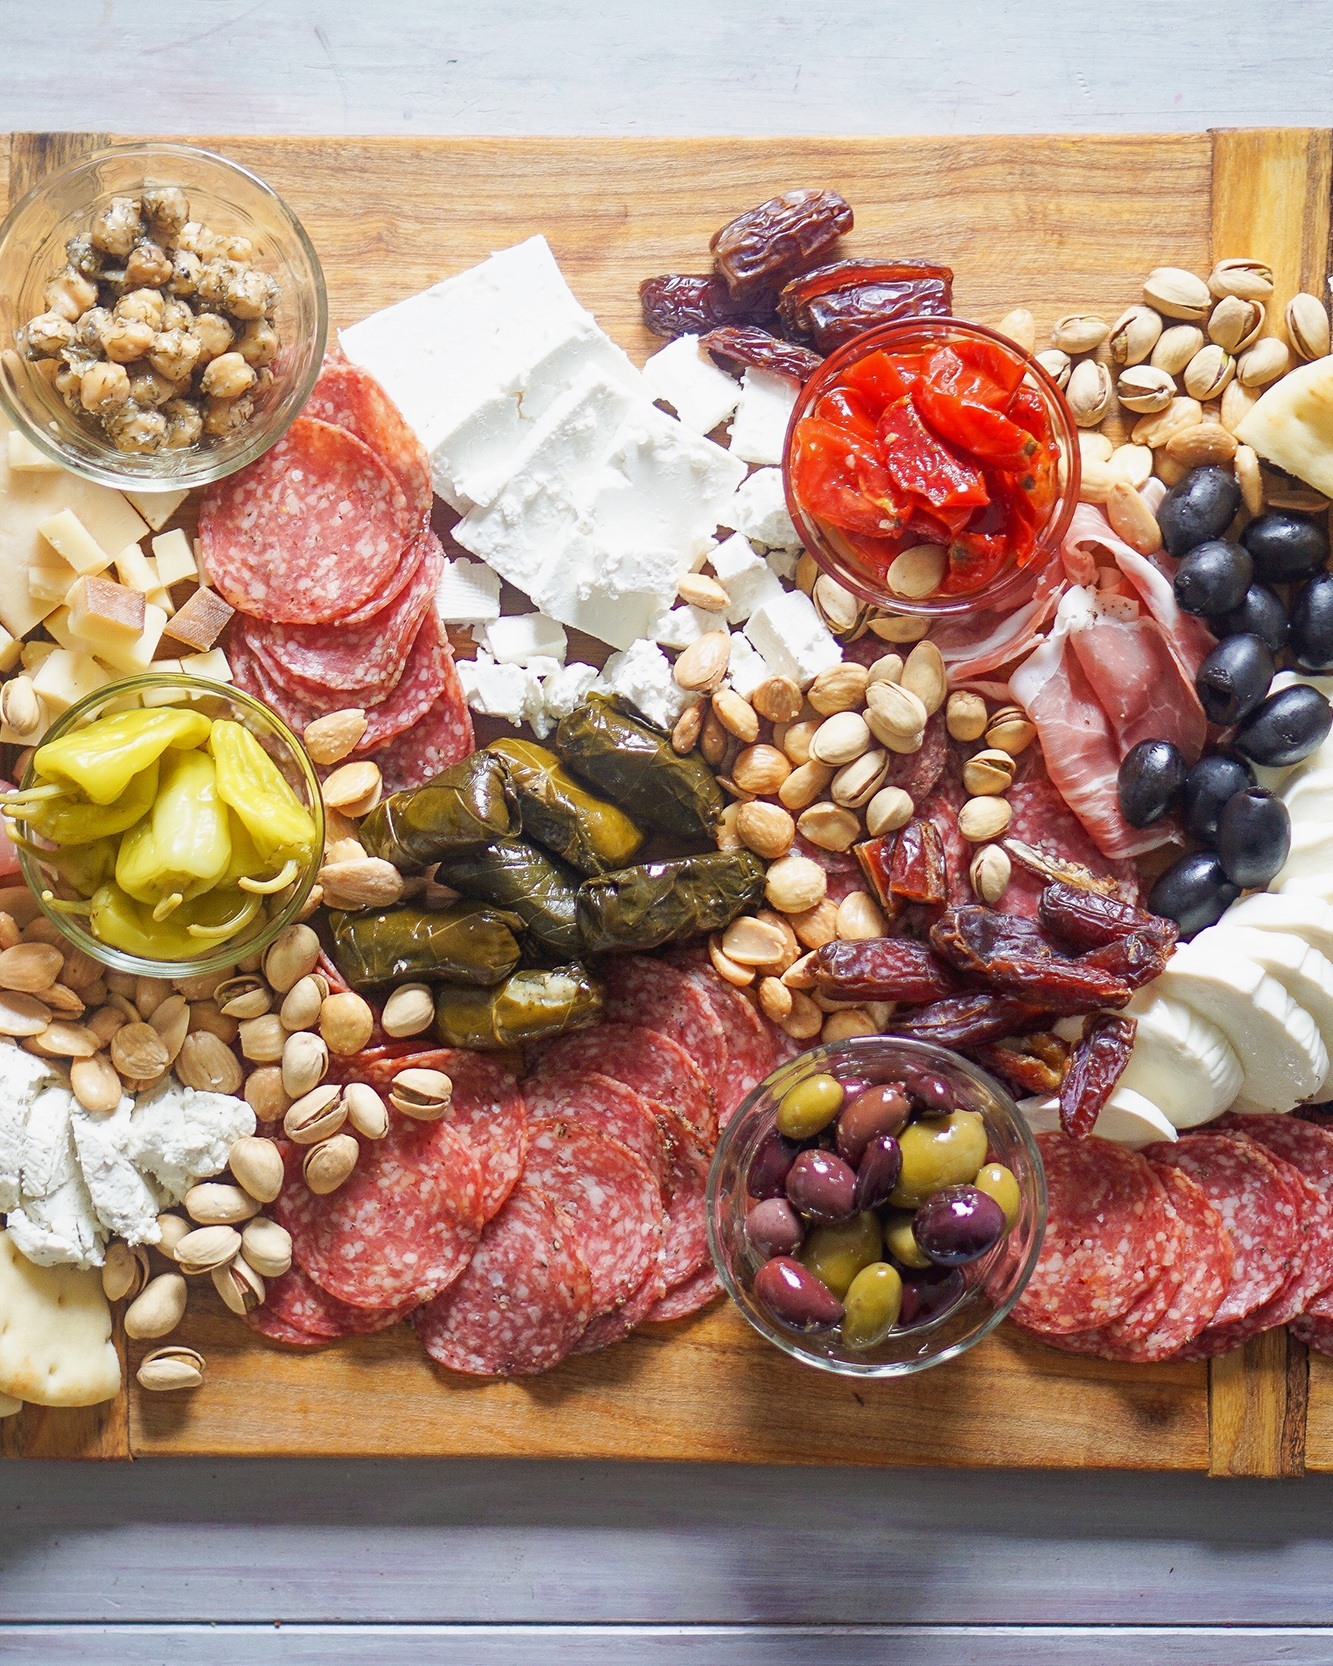 cured meats&cheeses -